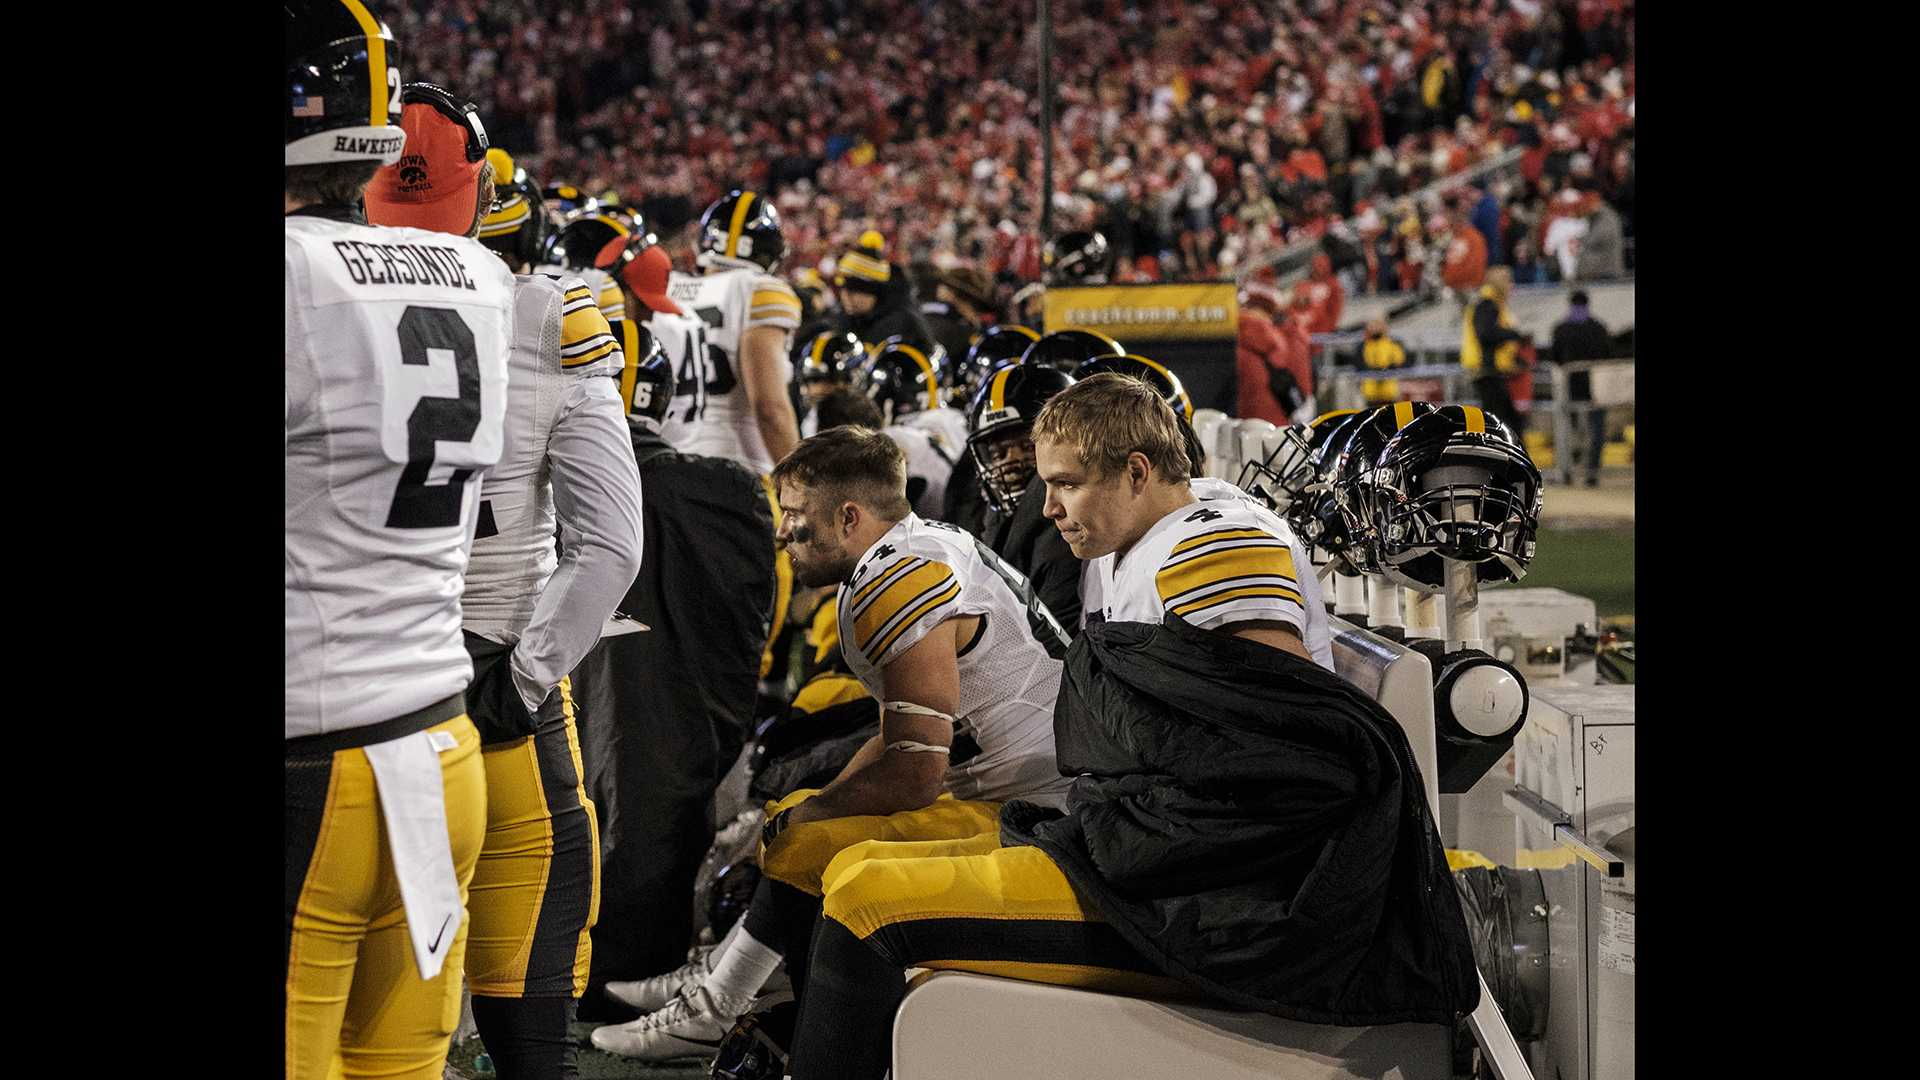 Iowa quarterback Nate Stanley sits on the bench after fumbling the ball during Iowa's game against Wisconsin at Camp Randall Stadium on Saturday, Nov. 11, 2017. The badgers defeated the Hawkeyes 38-14. (Nick Rohlman/The Daily Iowan)